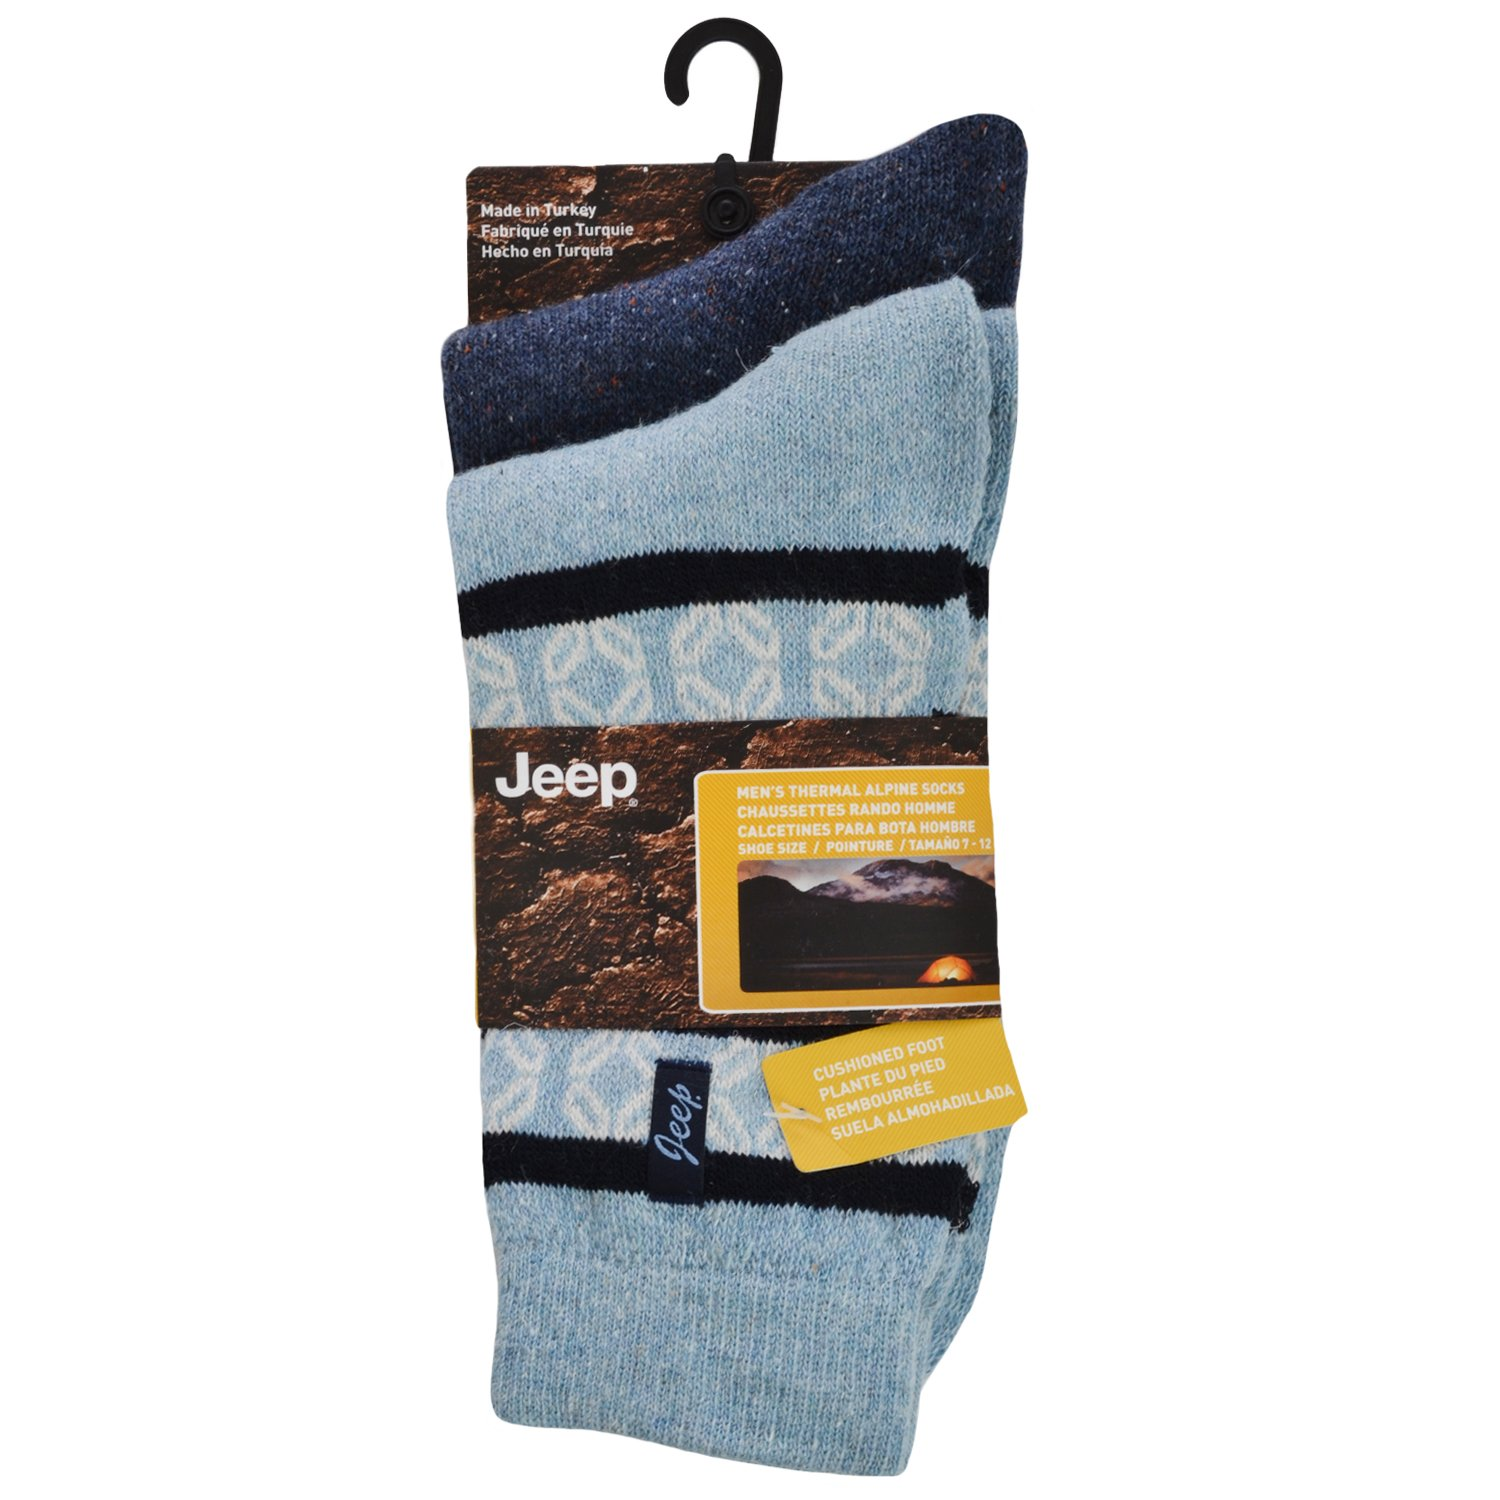 2 Pair Jeep Mens Thermal Thick Wool Walking Boot Socks - Nvy/Sky - 6-11UK at Amazon Mens Clothing store: